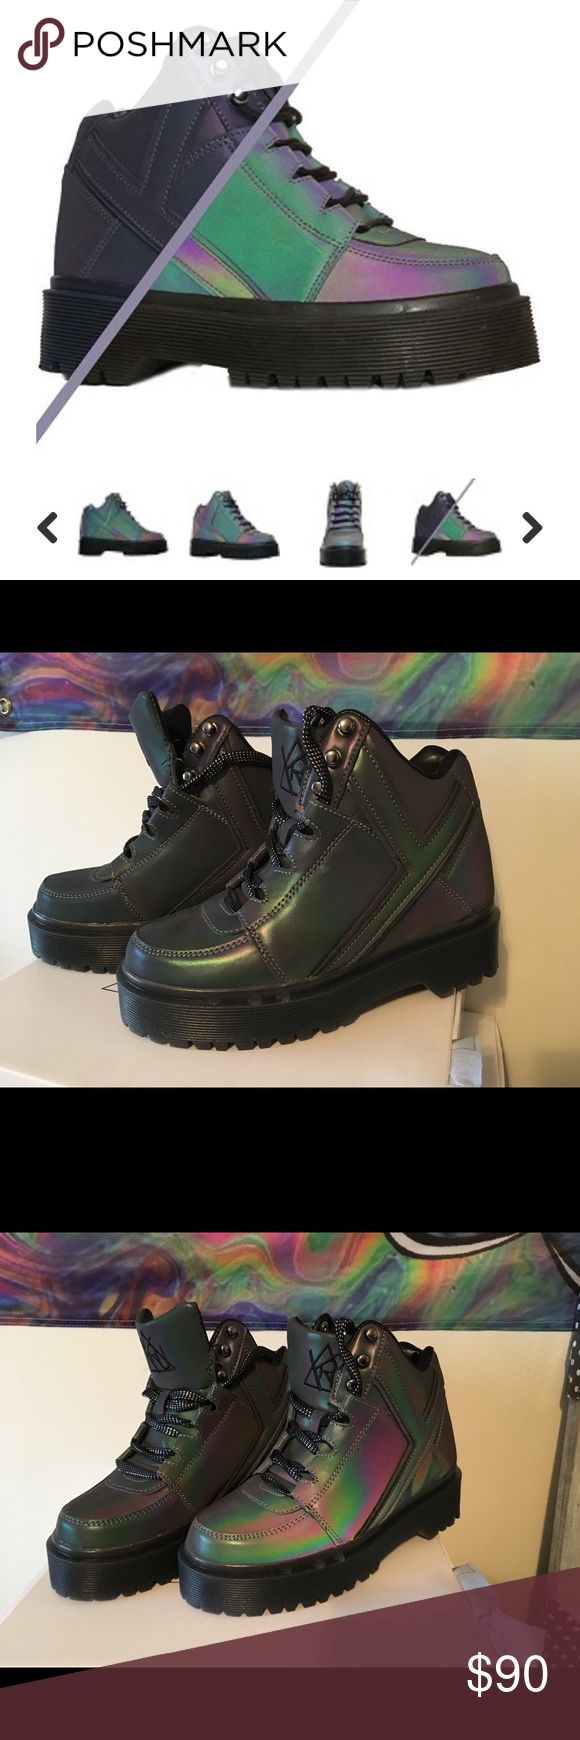 YRU QOMZO Slayr Reflective Boots (BRAND NEW) Ordered off of YRU website for $125 but the size was a little too big for me (usually wear a 6.5). Size 7, brand new never worn! 3rd pic is reflective in warm lighting YRU Shoes Combat & Moto Boots